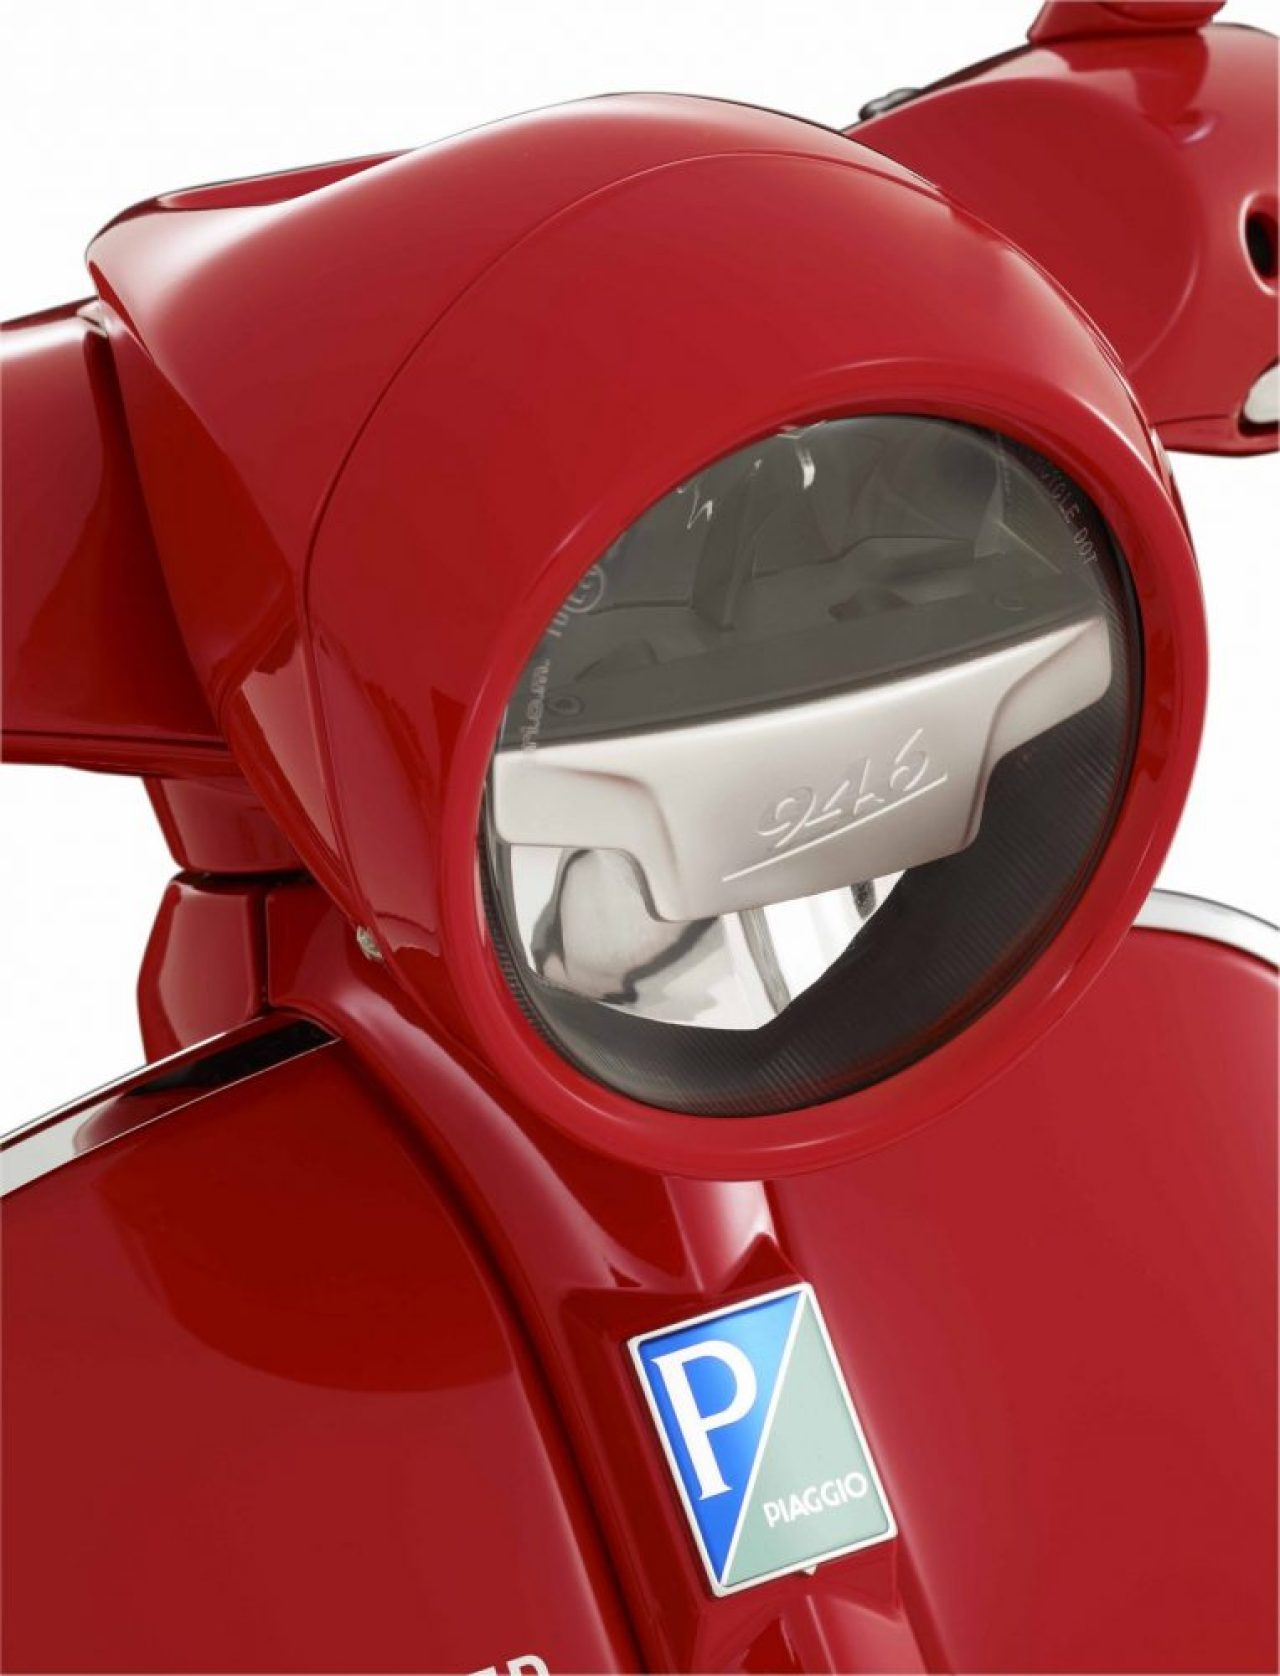 vespa-946-red-headlight